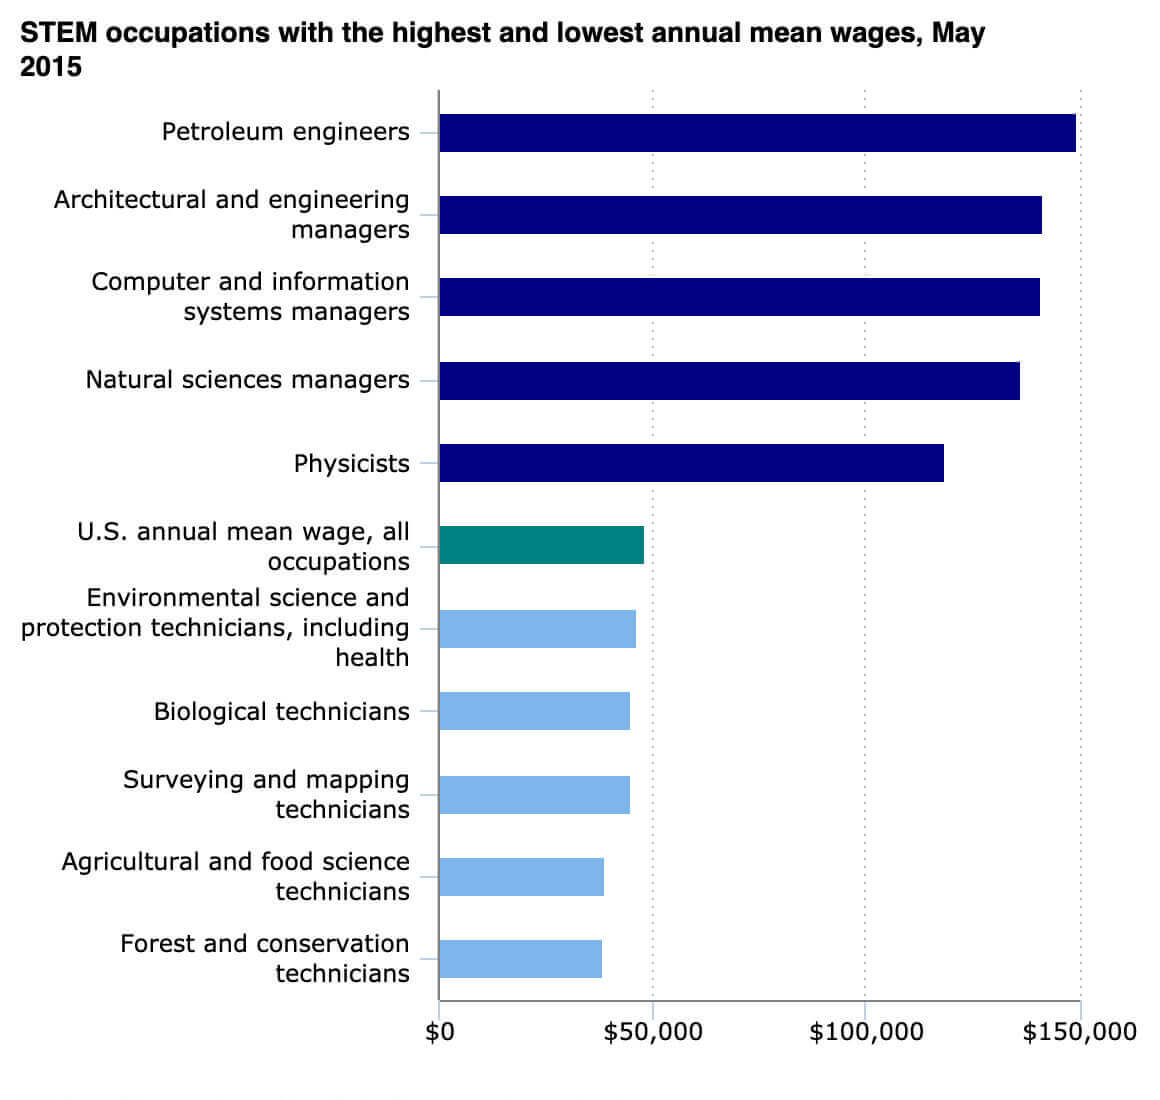 Chart on STEM occupations with highest and lowest annual mean wages